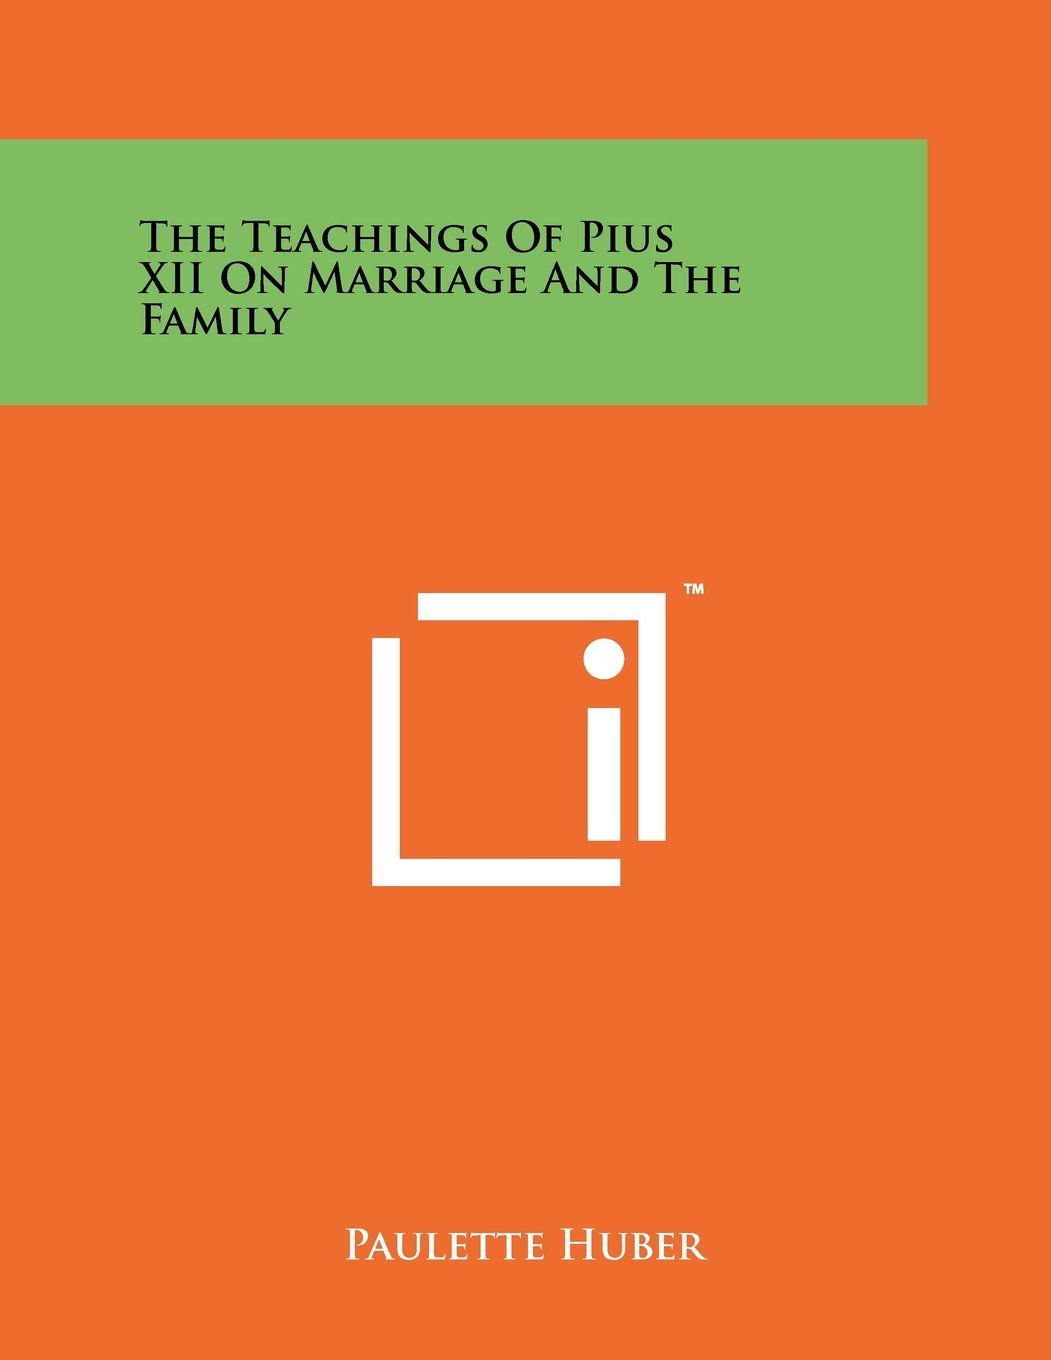 The Teachings of Pius XII on Marriage and the Family pdf